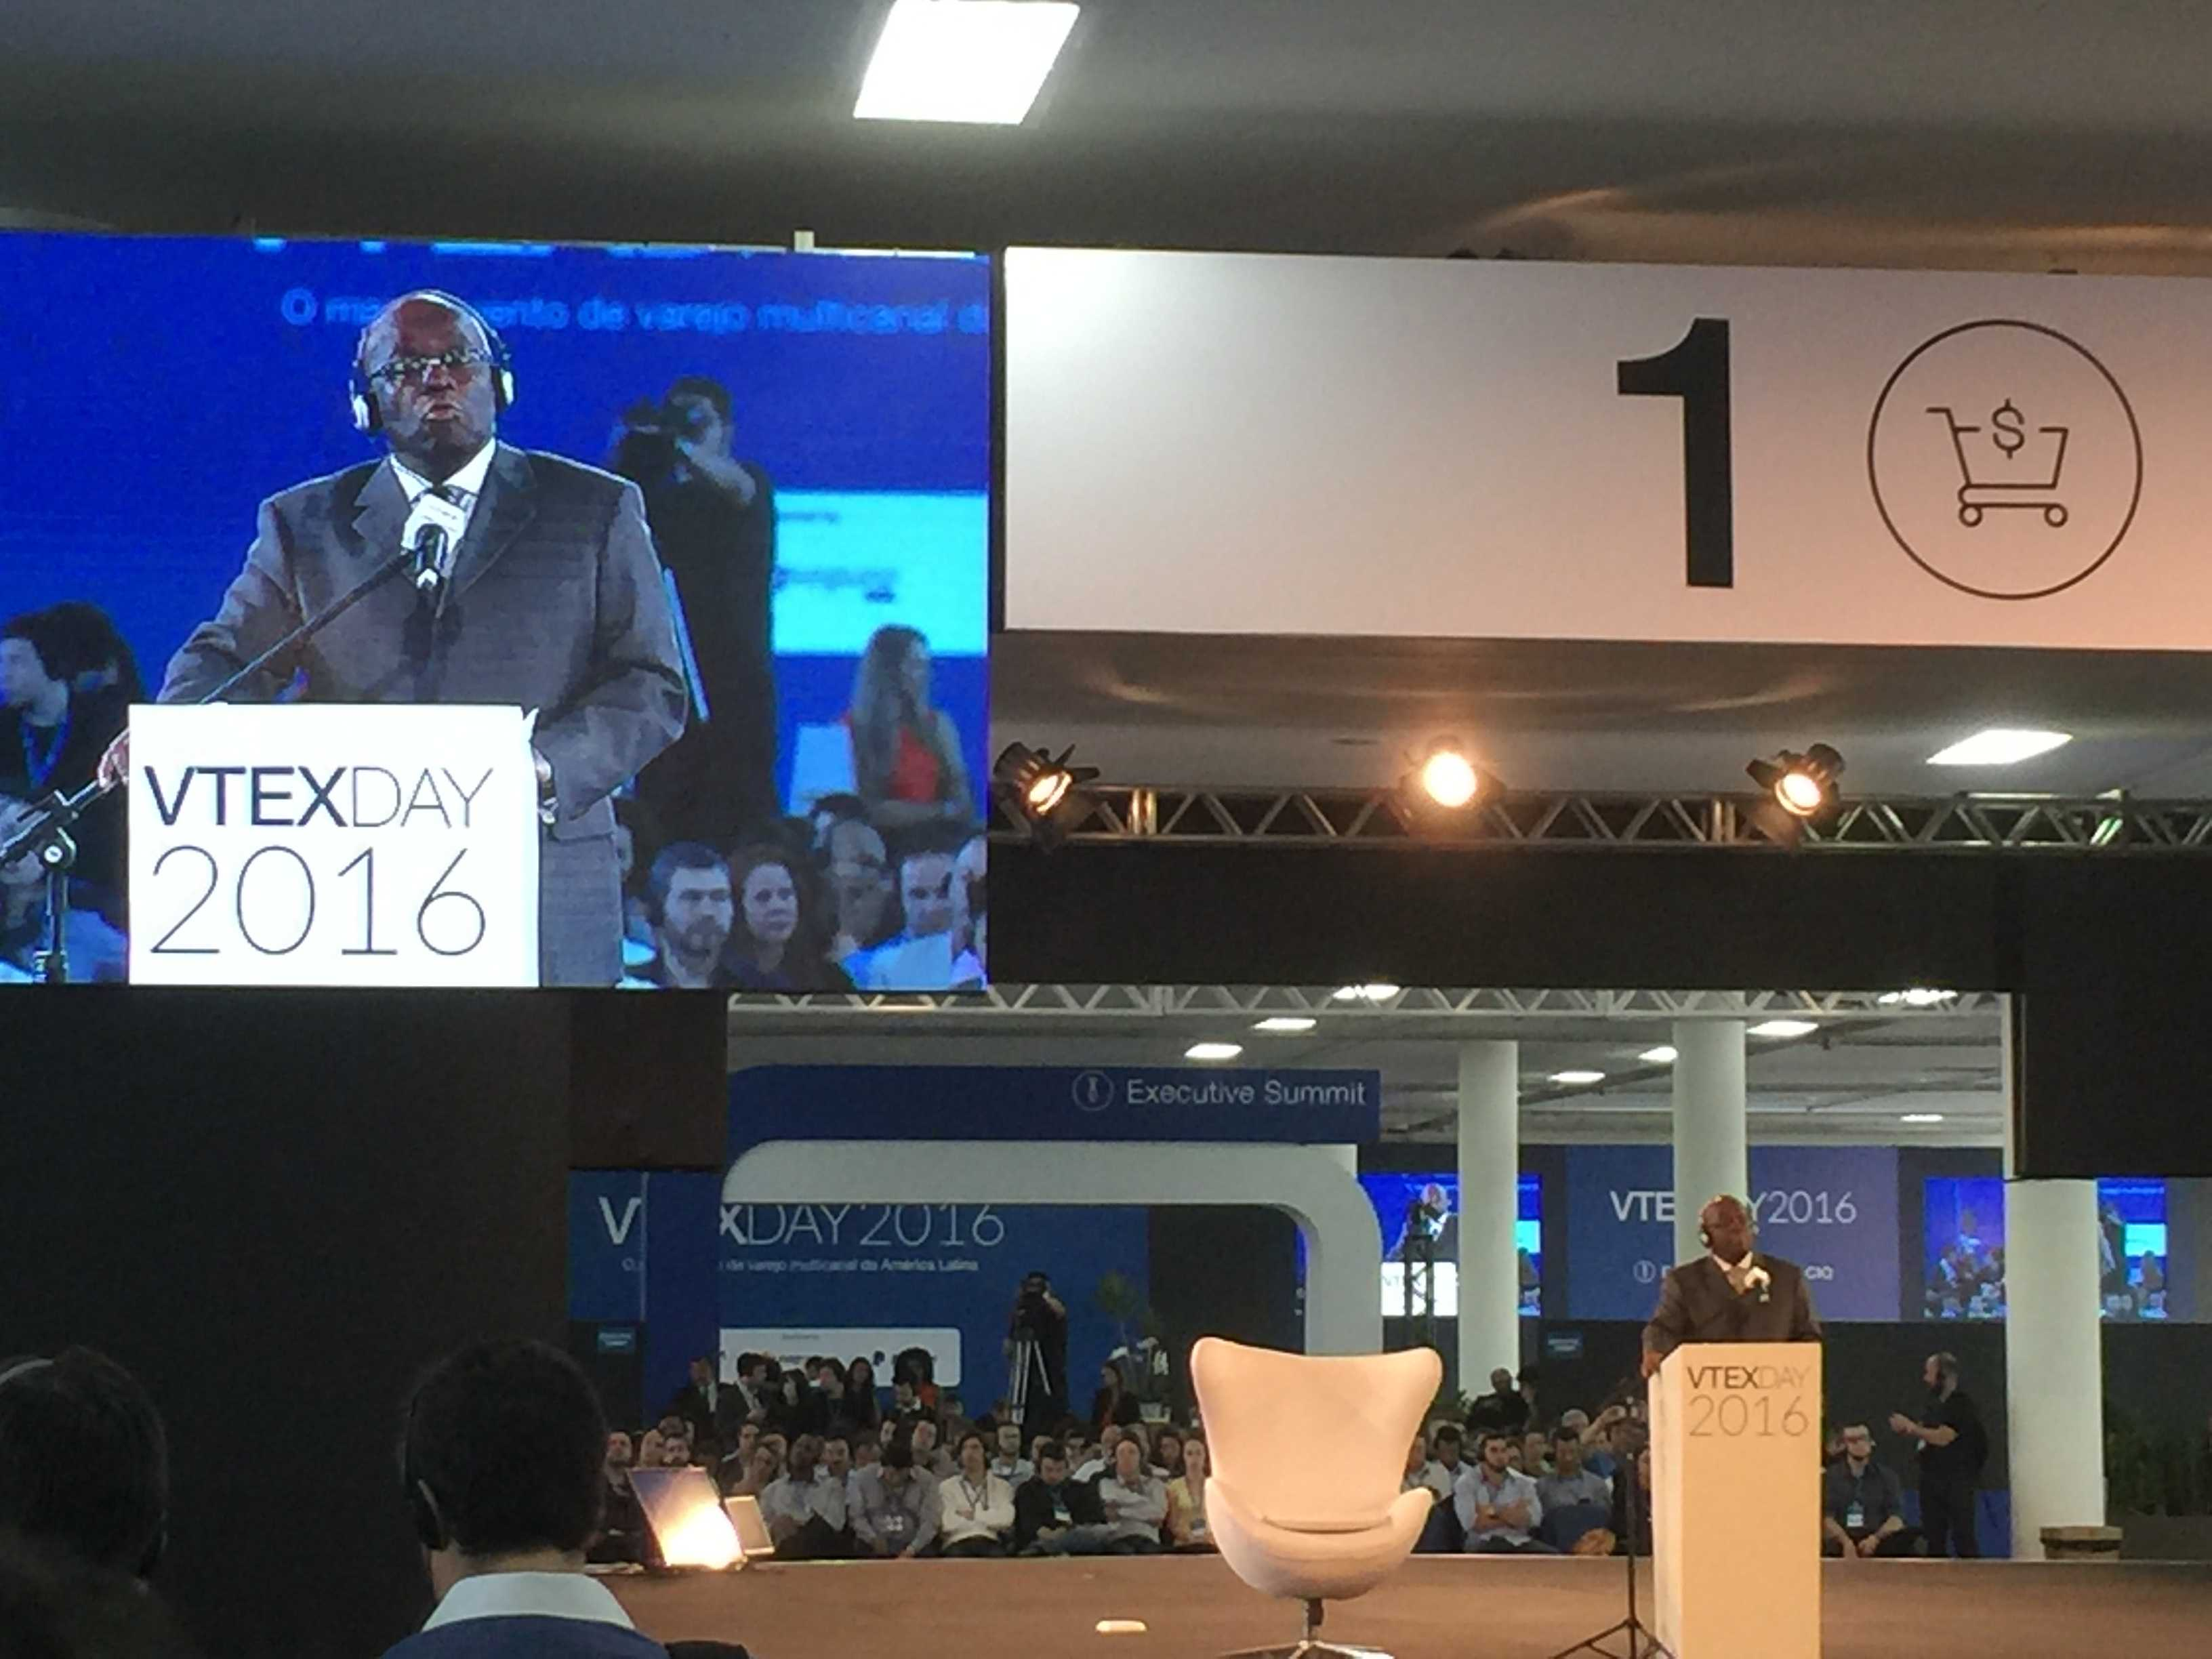 Joaquim Barbosa no palco do VTEX Day.